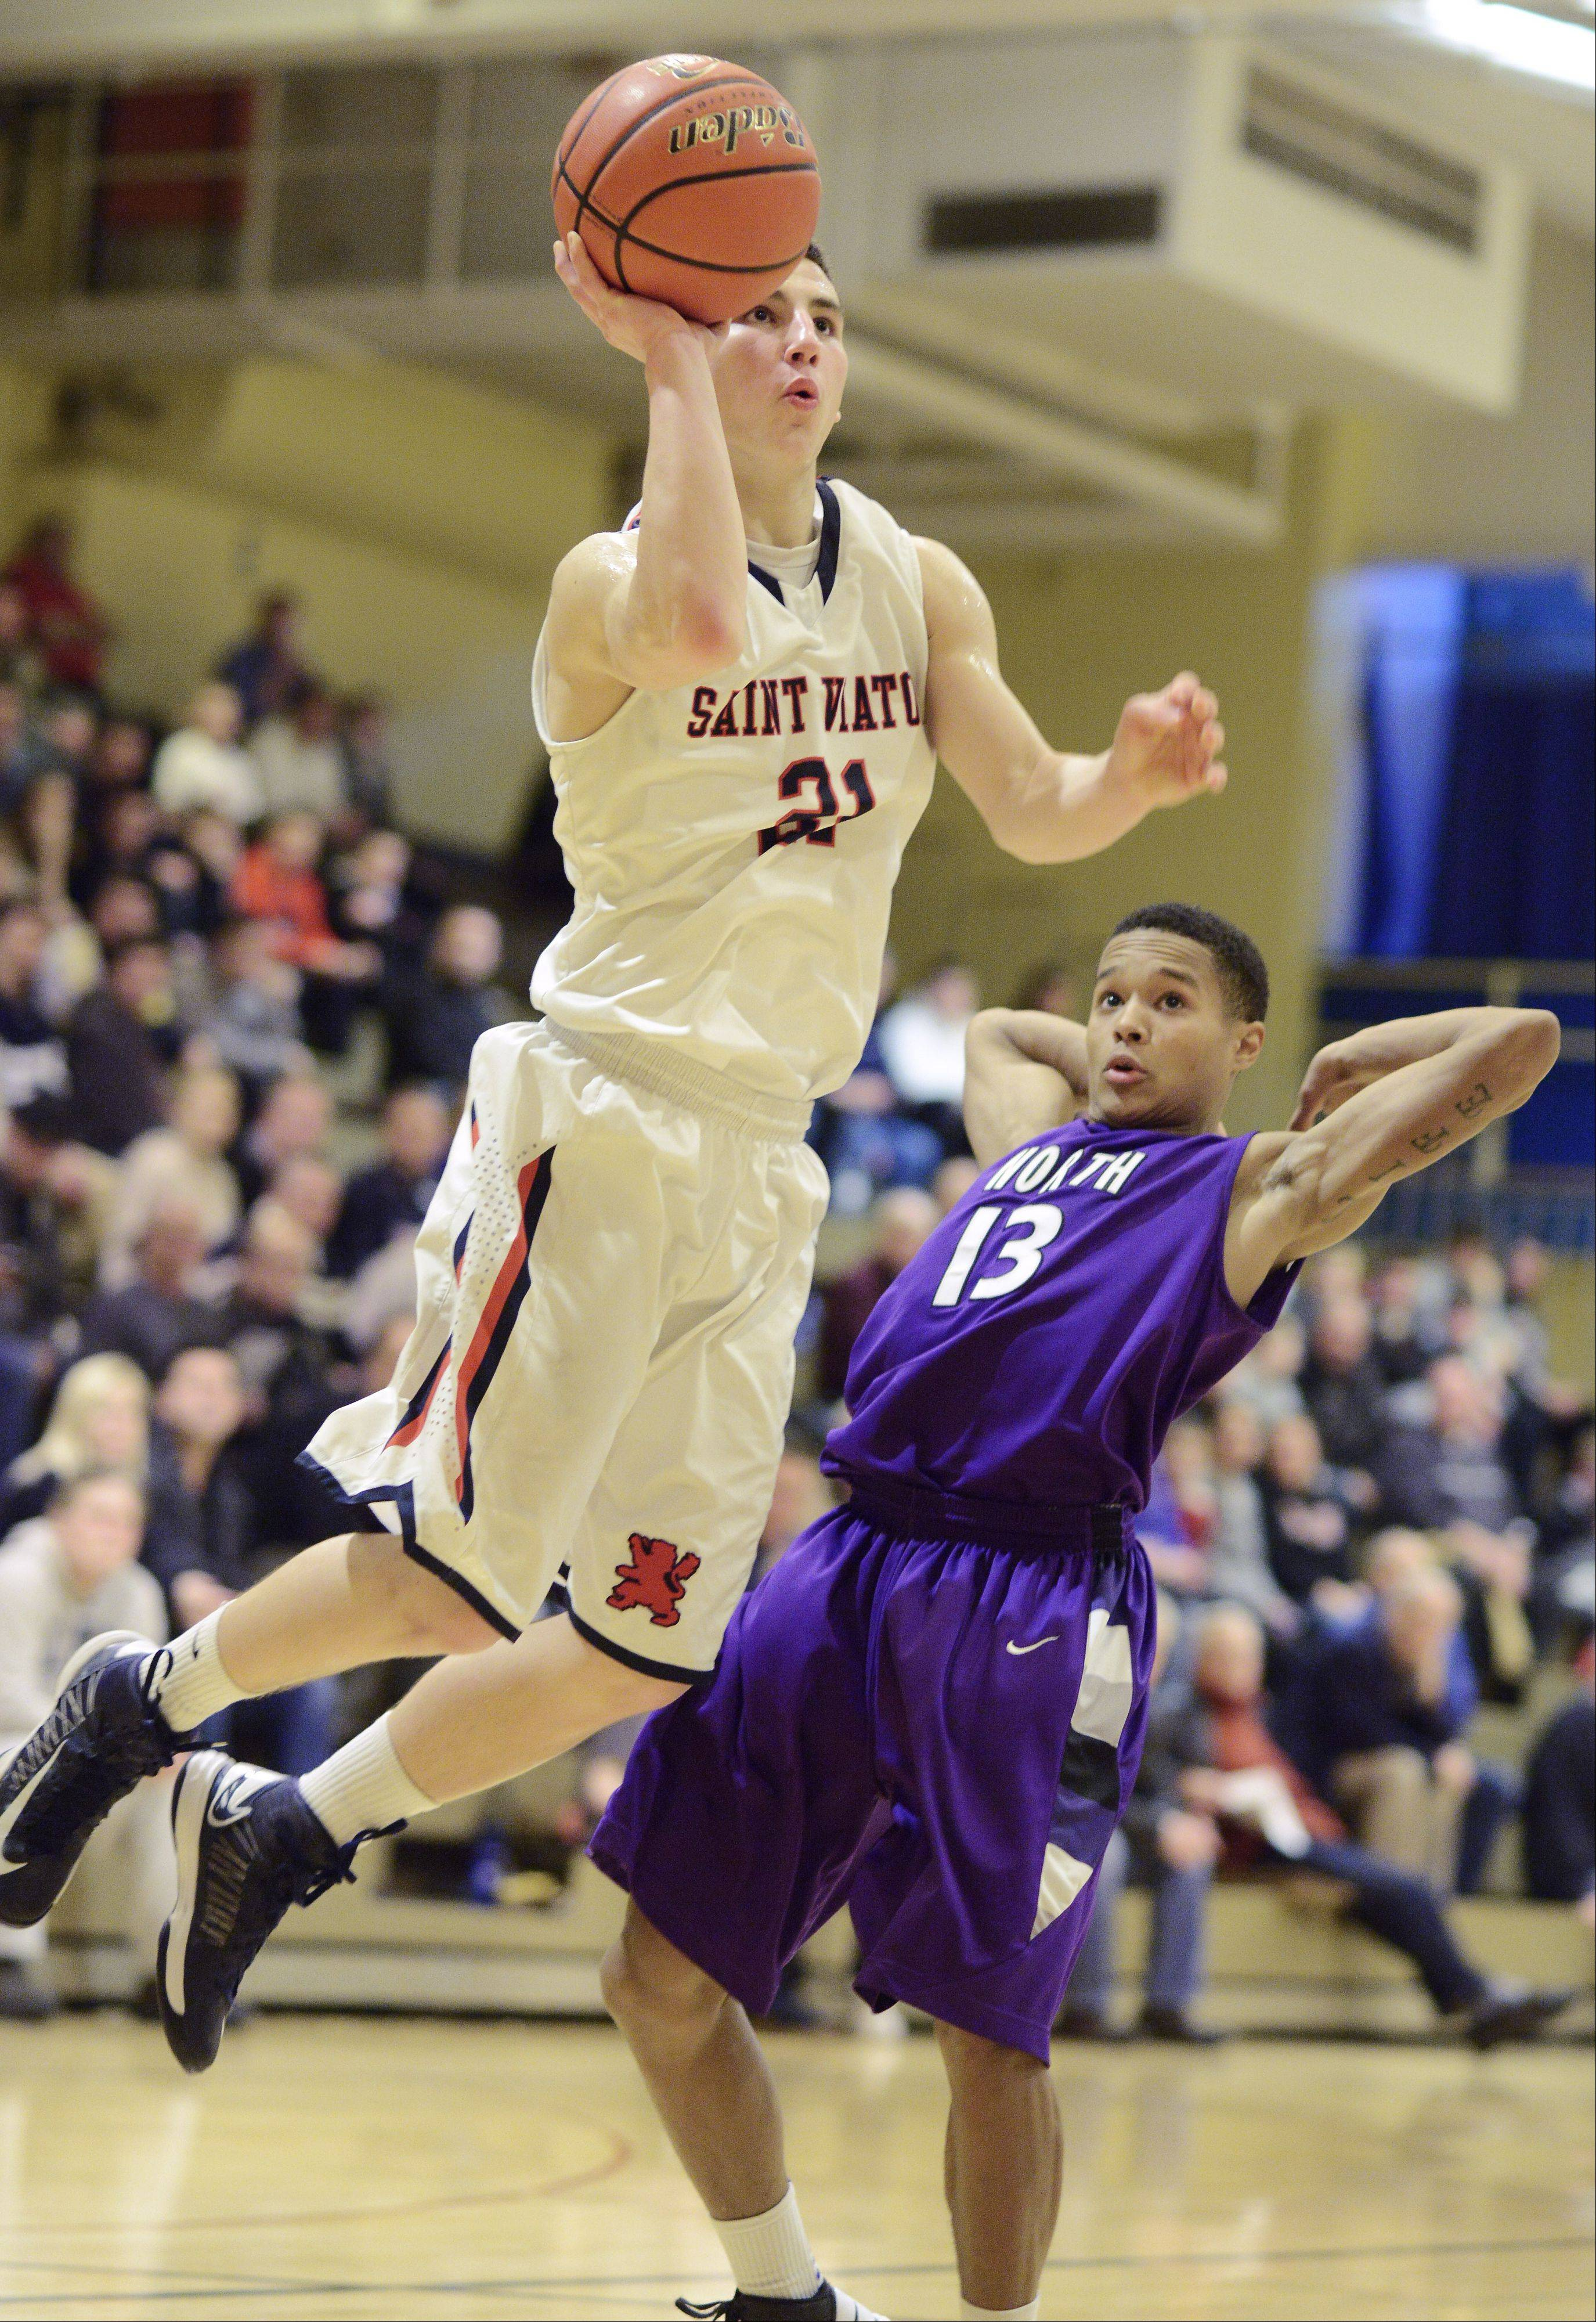 St. Viator�s Mark Falotico takes a jump shot as he moves past Niles North�s JJ Myles during Friday�s semifinal of the Wheeling Tournament.